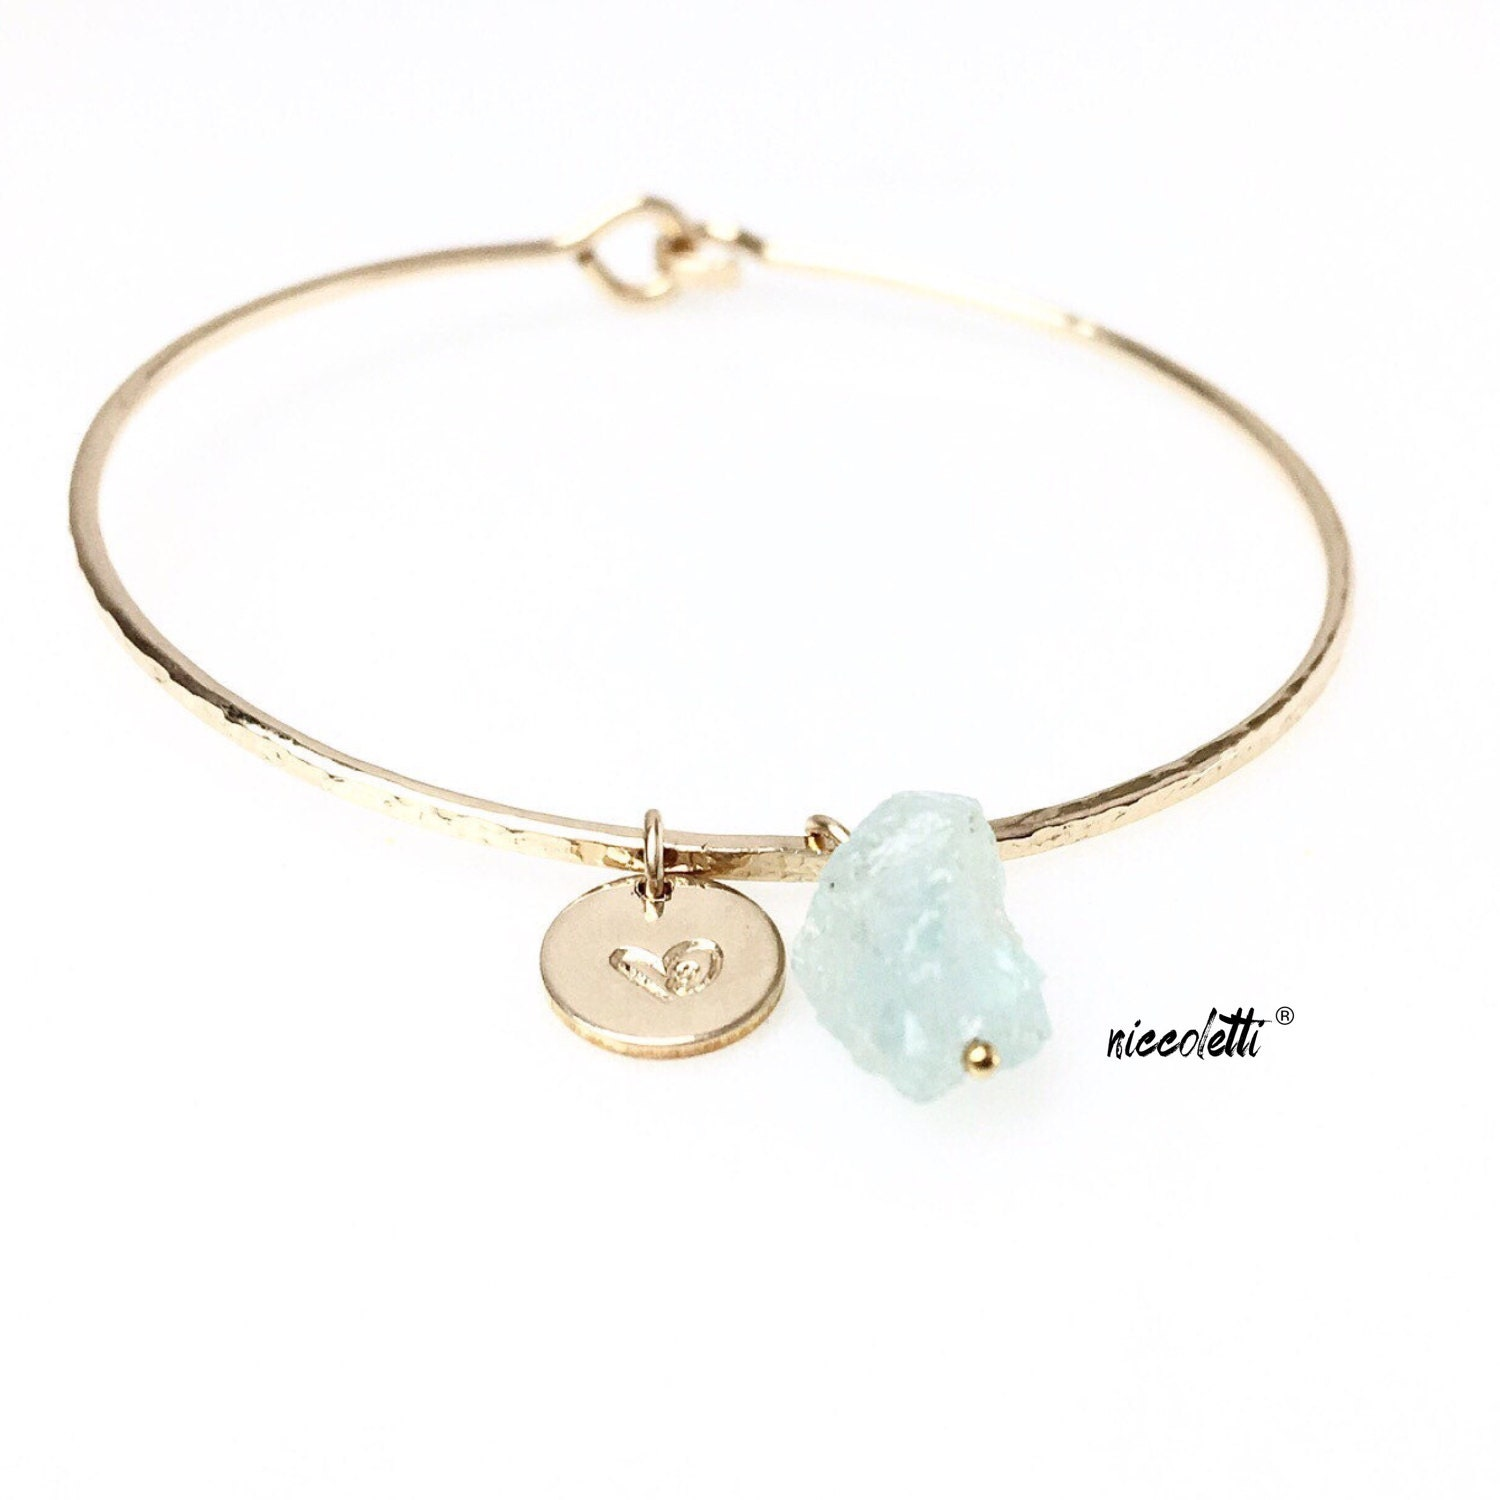 Raw Aquamarine Bracelet / March Birthstone Gift / Rough Aquamarine Jewelry / Personalized Gold Filled Bangle / Womens Jewelry Gifts